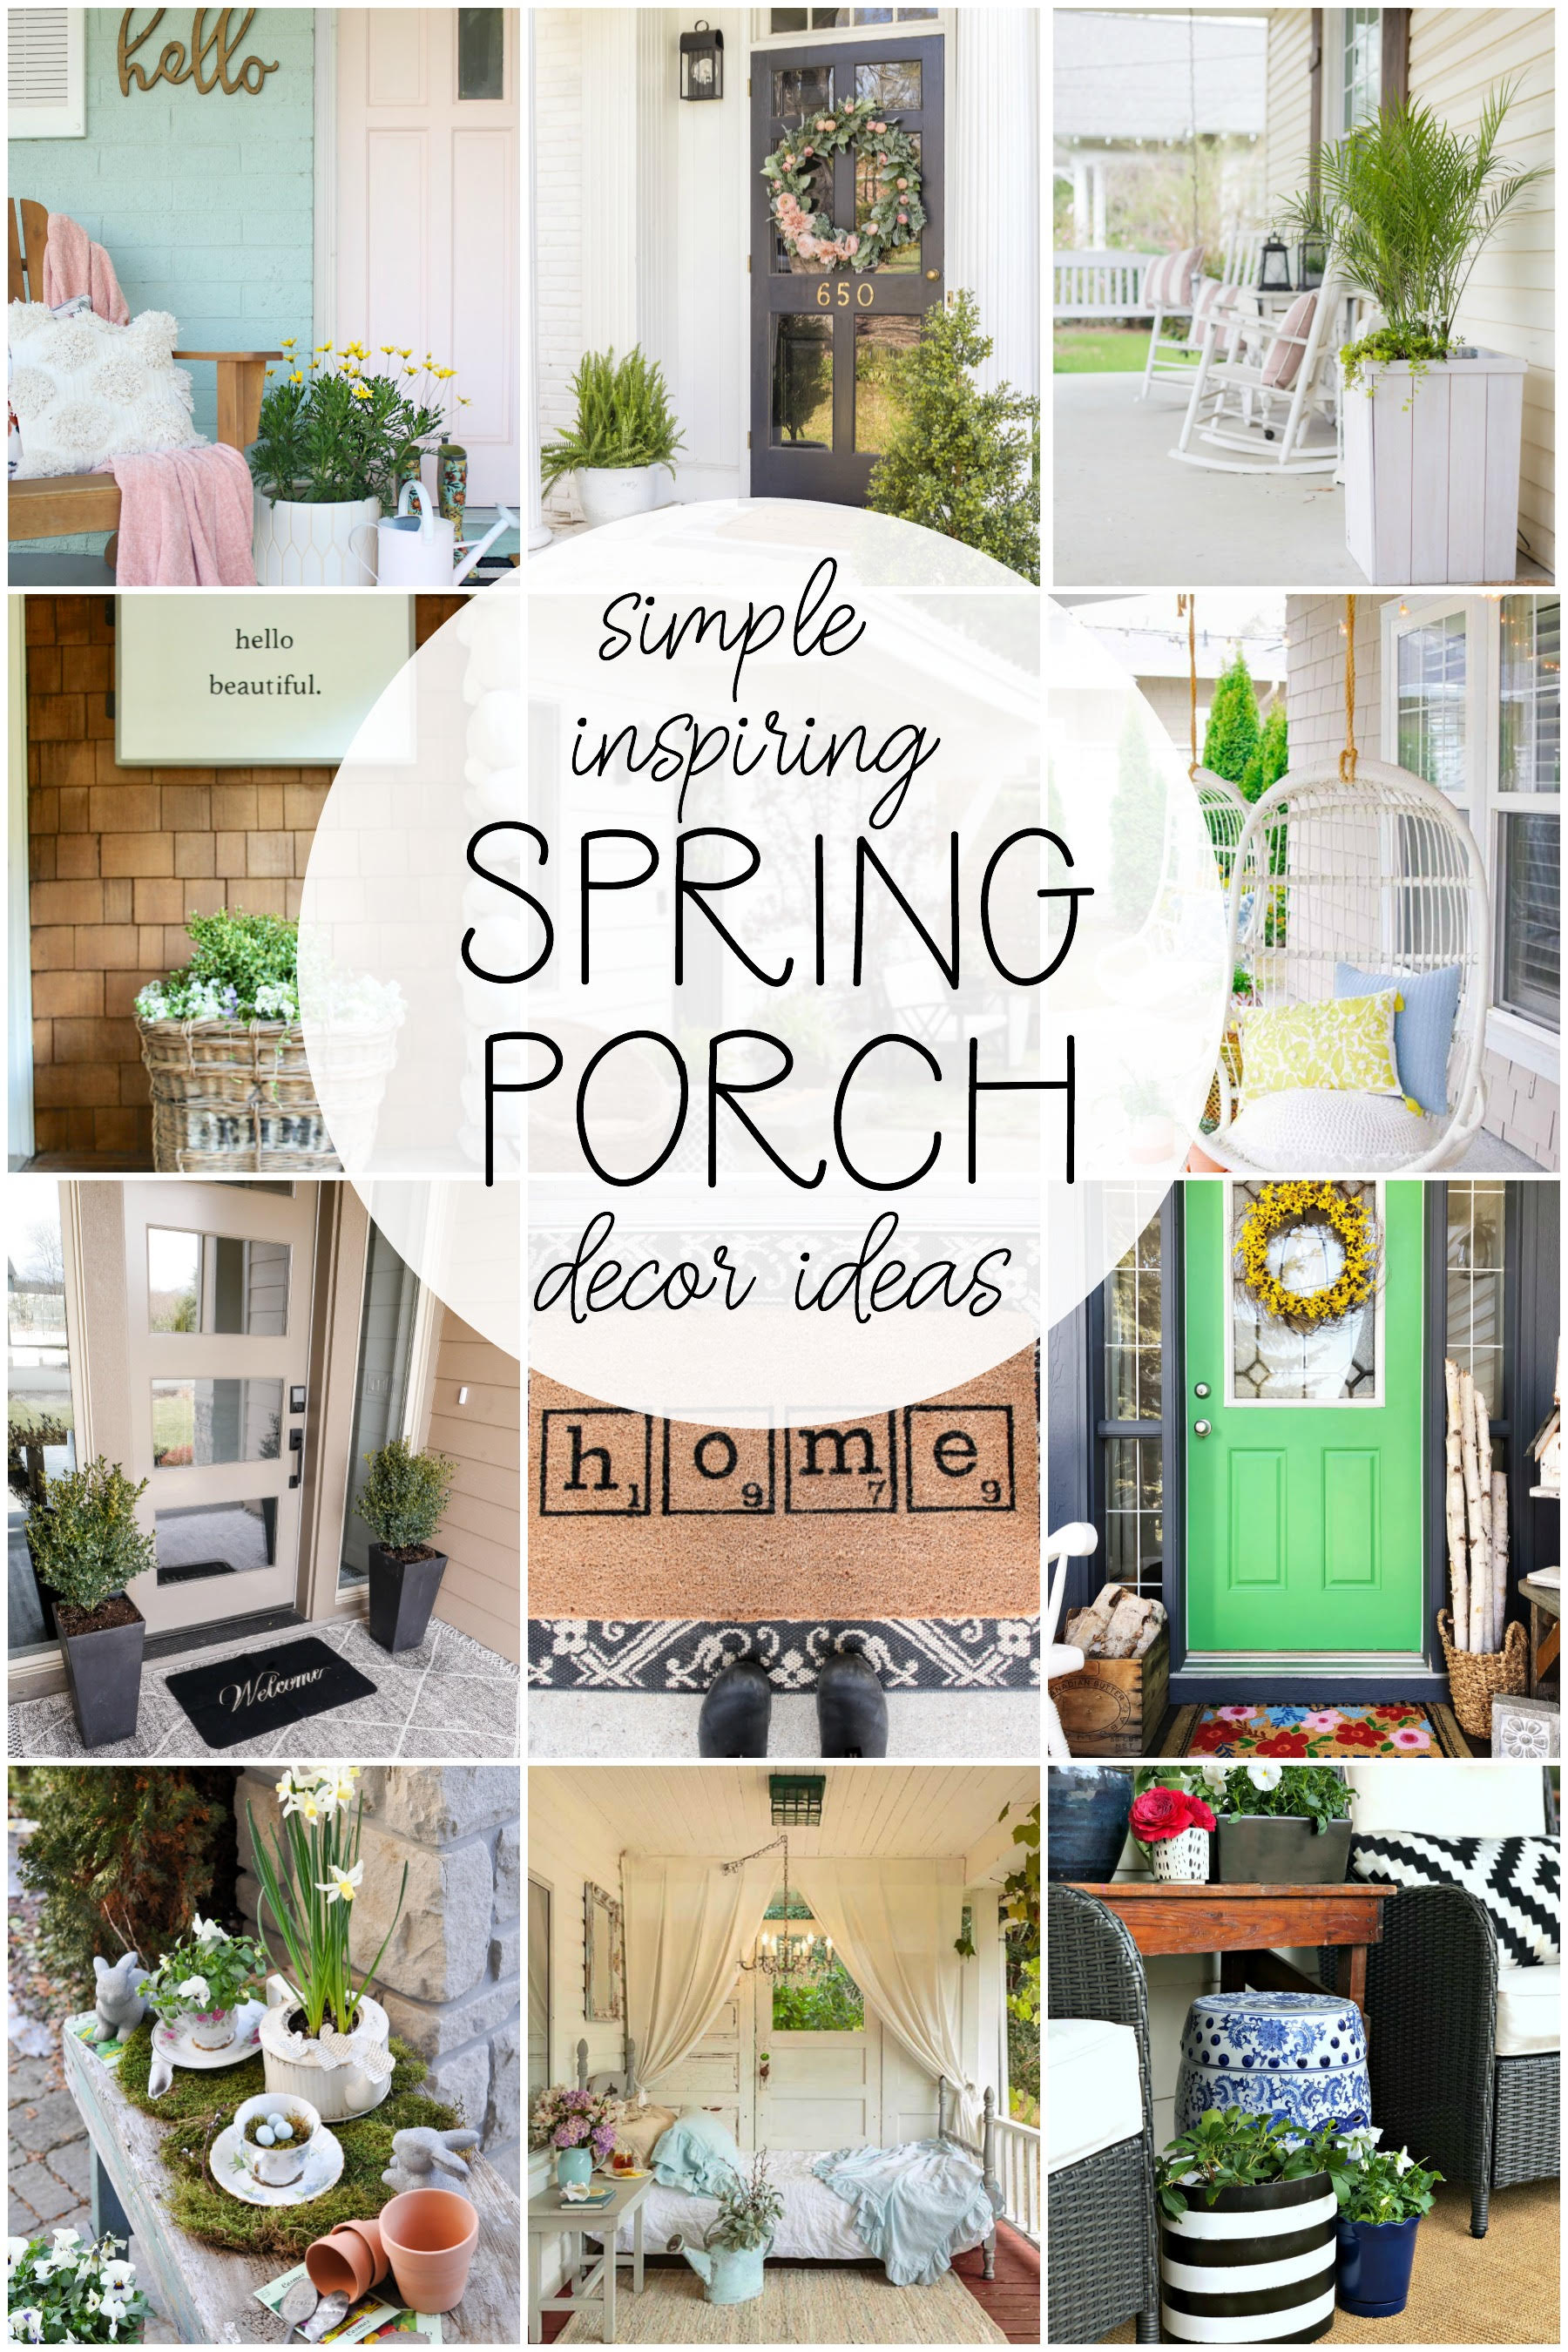 Simply Inspiring Spring Porch Decorating Ideas. Click to see 12 gorgeous ideas! #spring #springporch #porchrefresh #frontporch